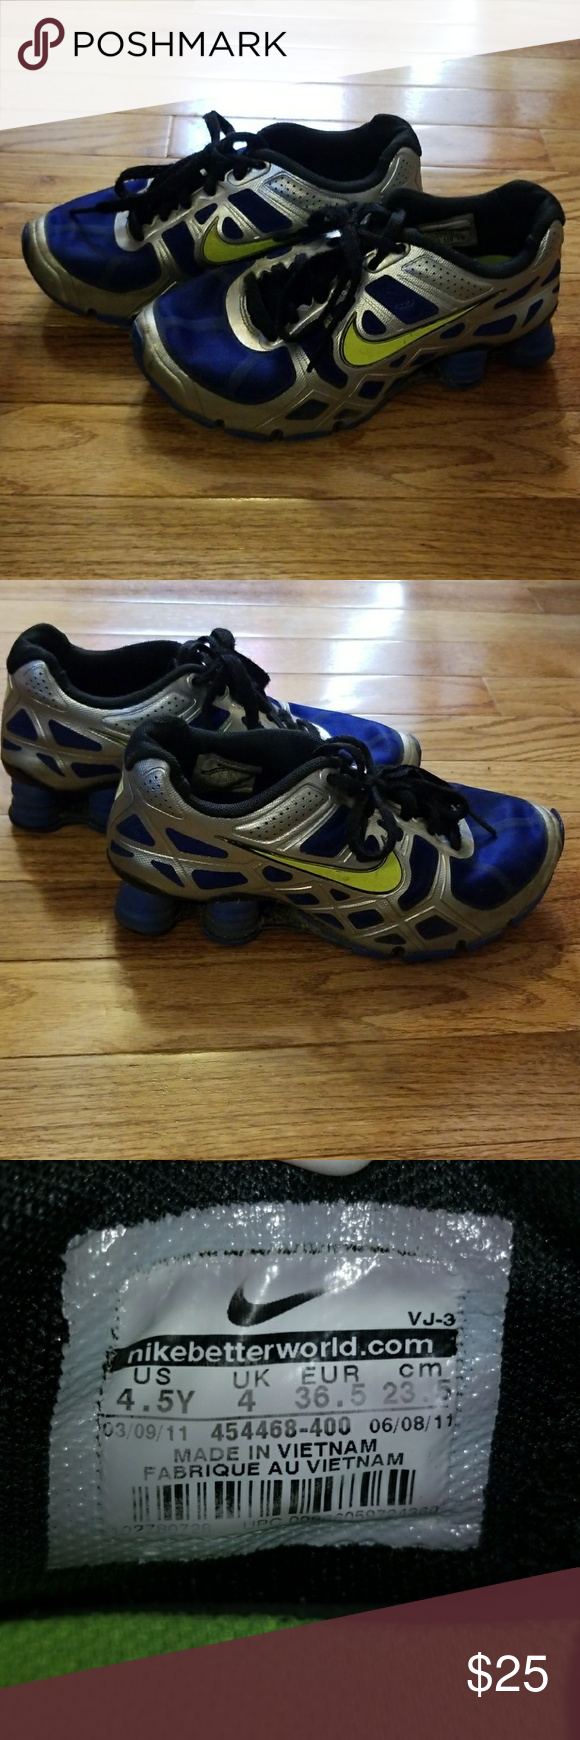 e81f313dcce ... best price youth boys nike shox size 4.5y youth boys nike shox size 4.5y